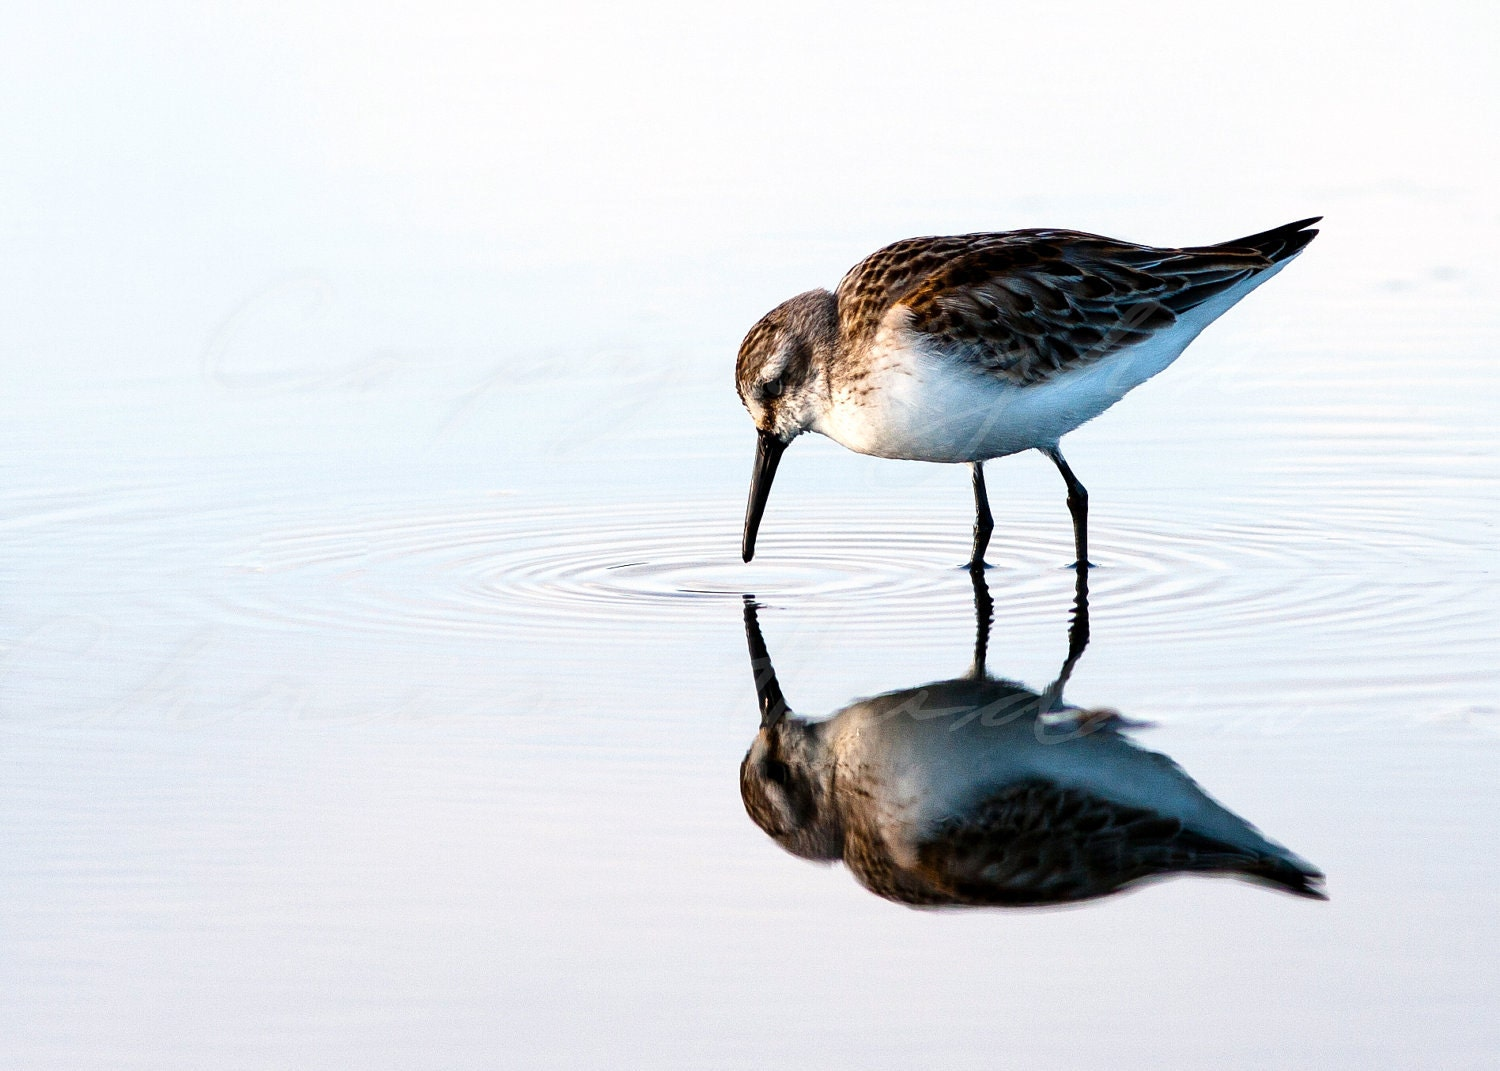 White rumped sandpiper reflection - 5x7 fine art signed and matted print - Simplynaturalphotos